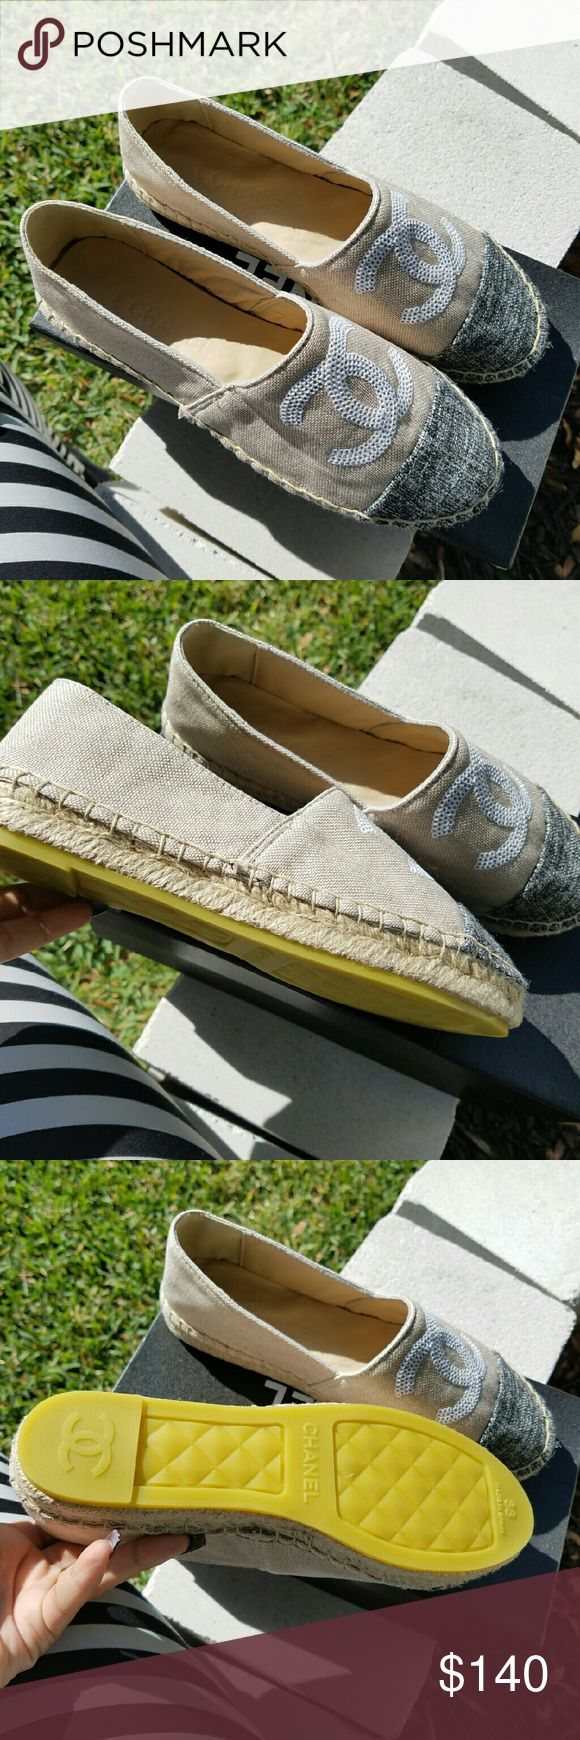 Espadrilles PRICE IS FIRM Brand new in box size 7 i would recommend for people who wear a 7, 7 1/2 they are a perfect fit ! PRICED ACCORDING TO AUTHENTICITY PLEASE CONSIDER PRICING OF NEW CHANEL ESPADRILLES THANKS LADIES Louis Vuitton Shoes